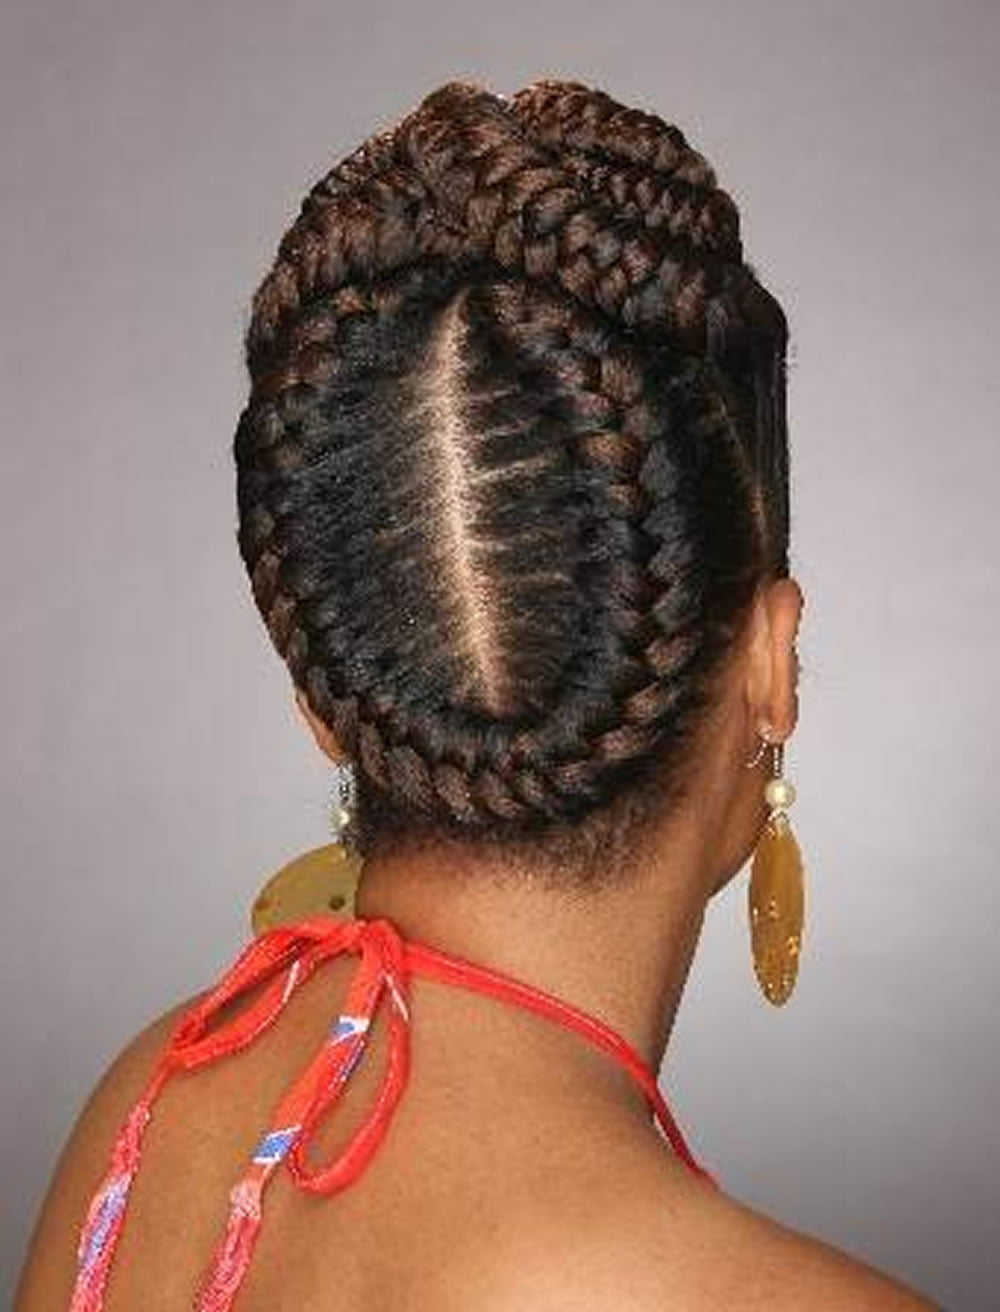 20 Best African American Braided Hairstyles for Women 2017-2018 | Page ...